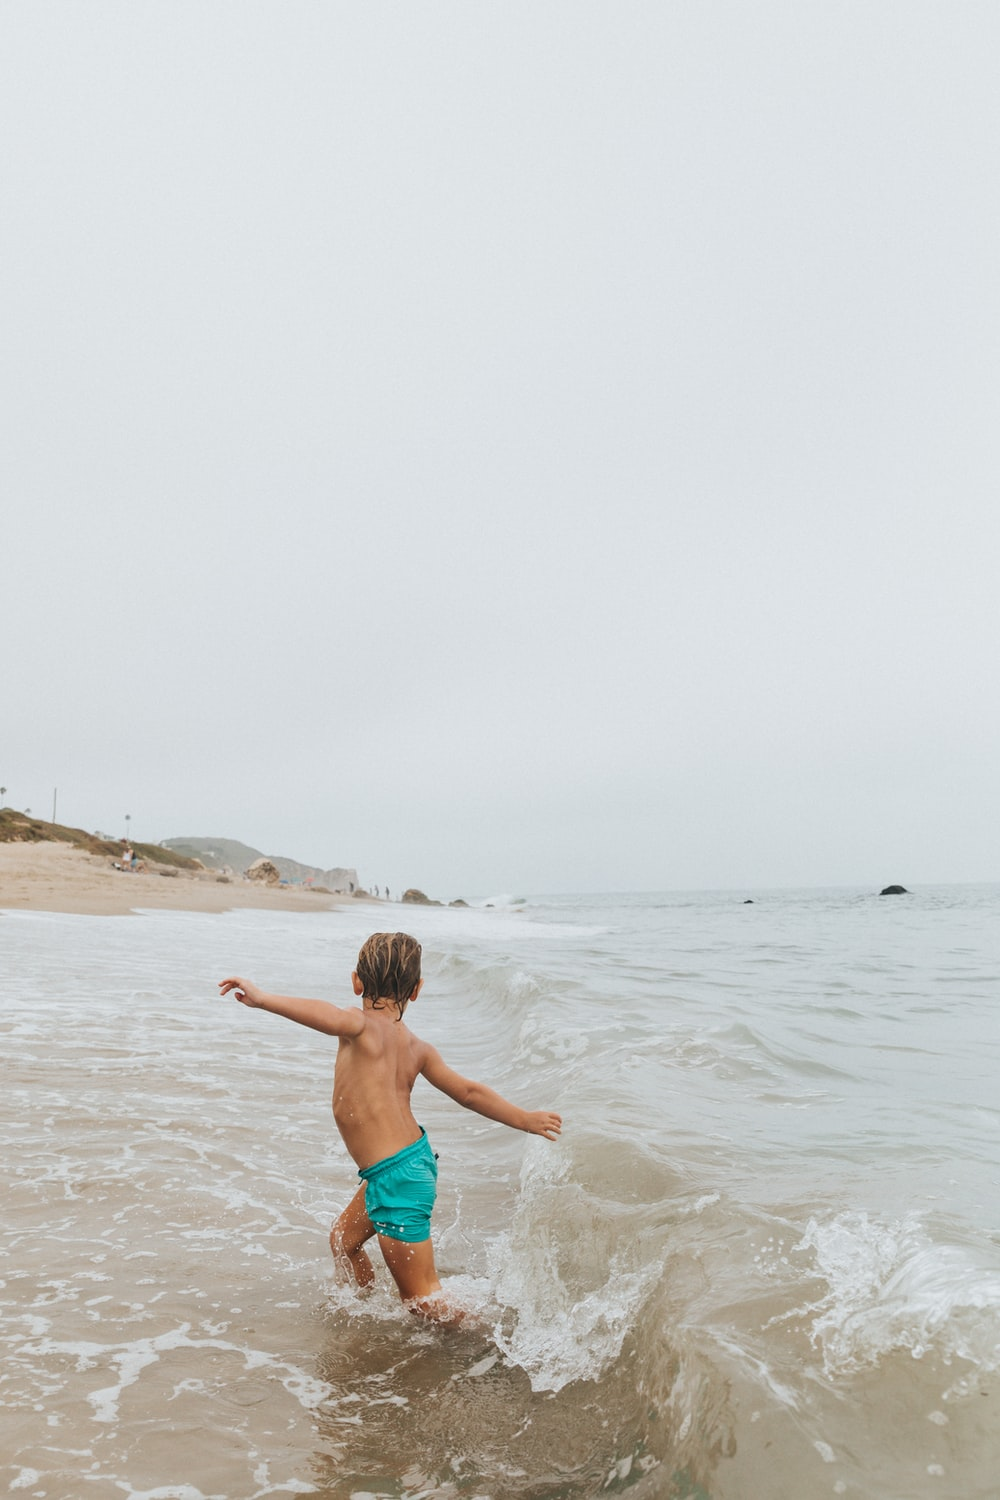 girl in blue shorts running on beach during daytime